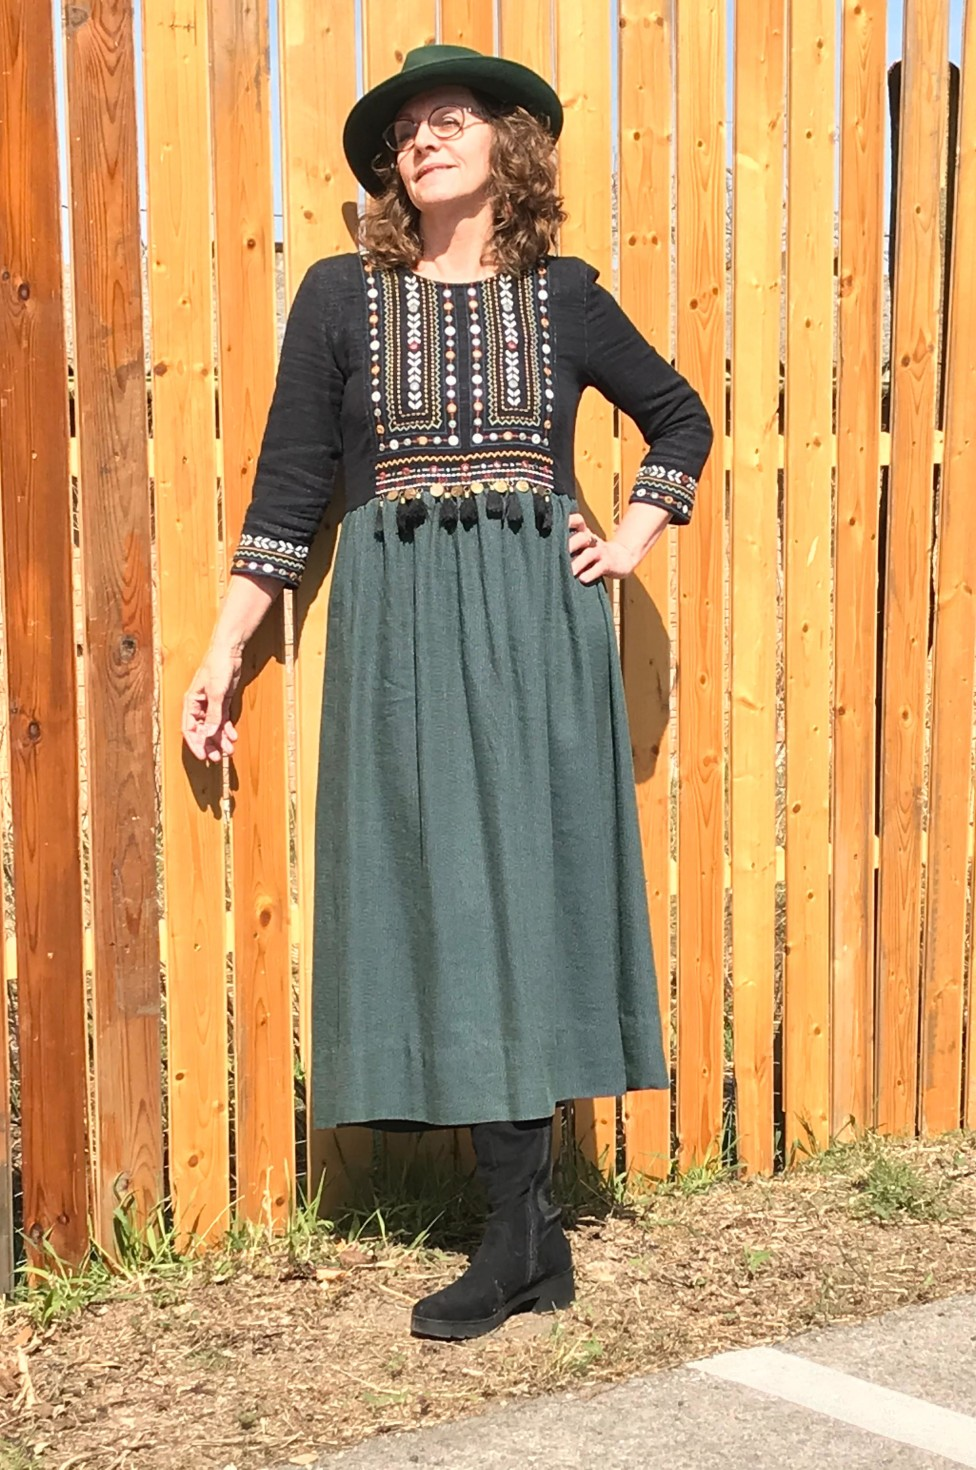 burda style Nutzerkreation Evelyn Upcycle-Hippie-Kleid